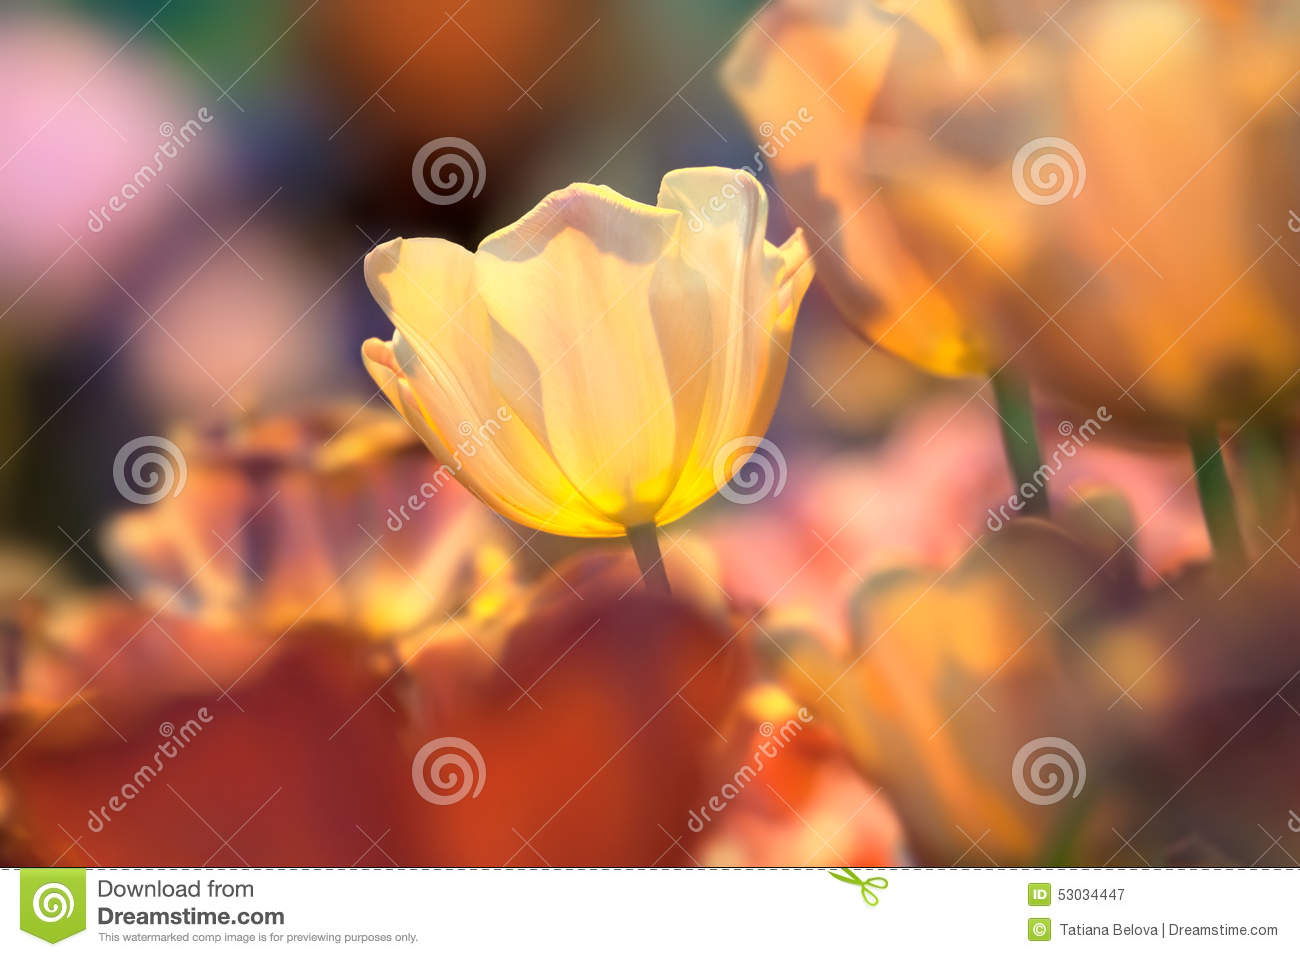 Flower of a yellow tulip on colorfull background